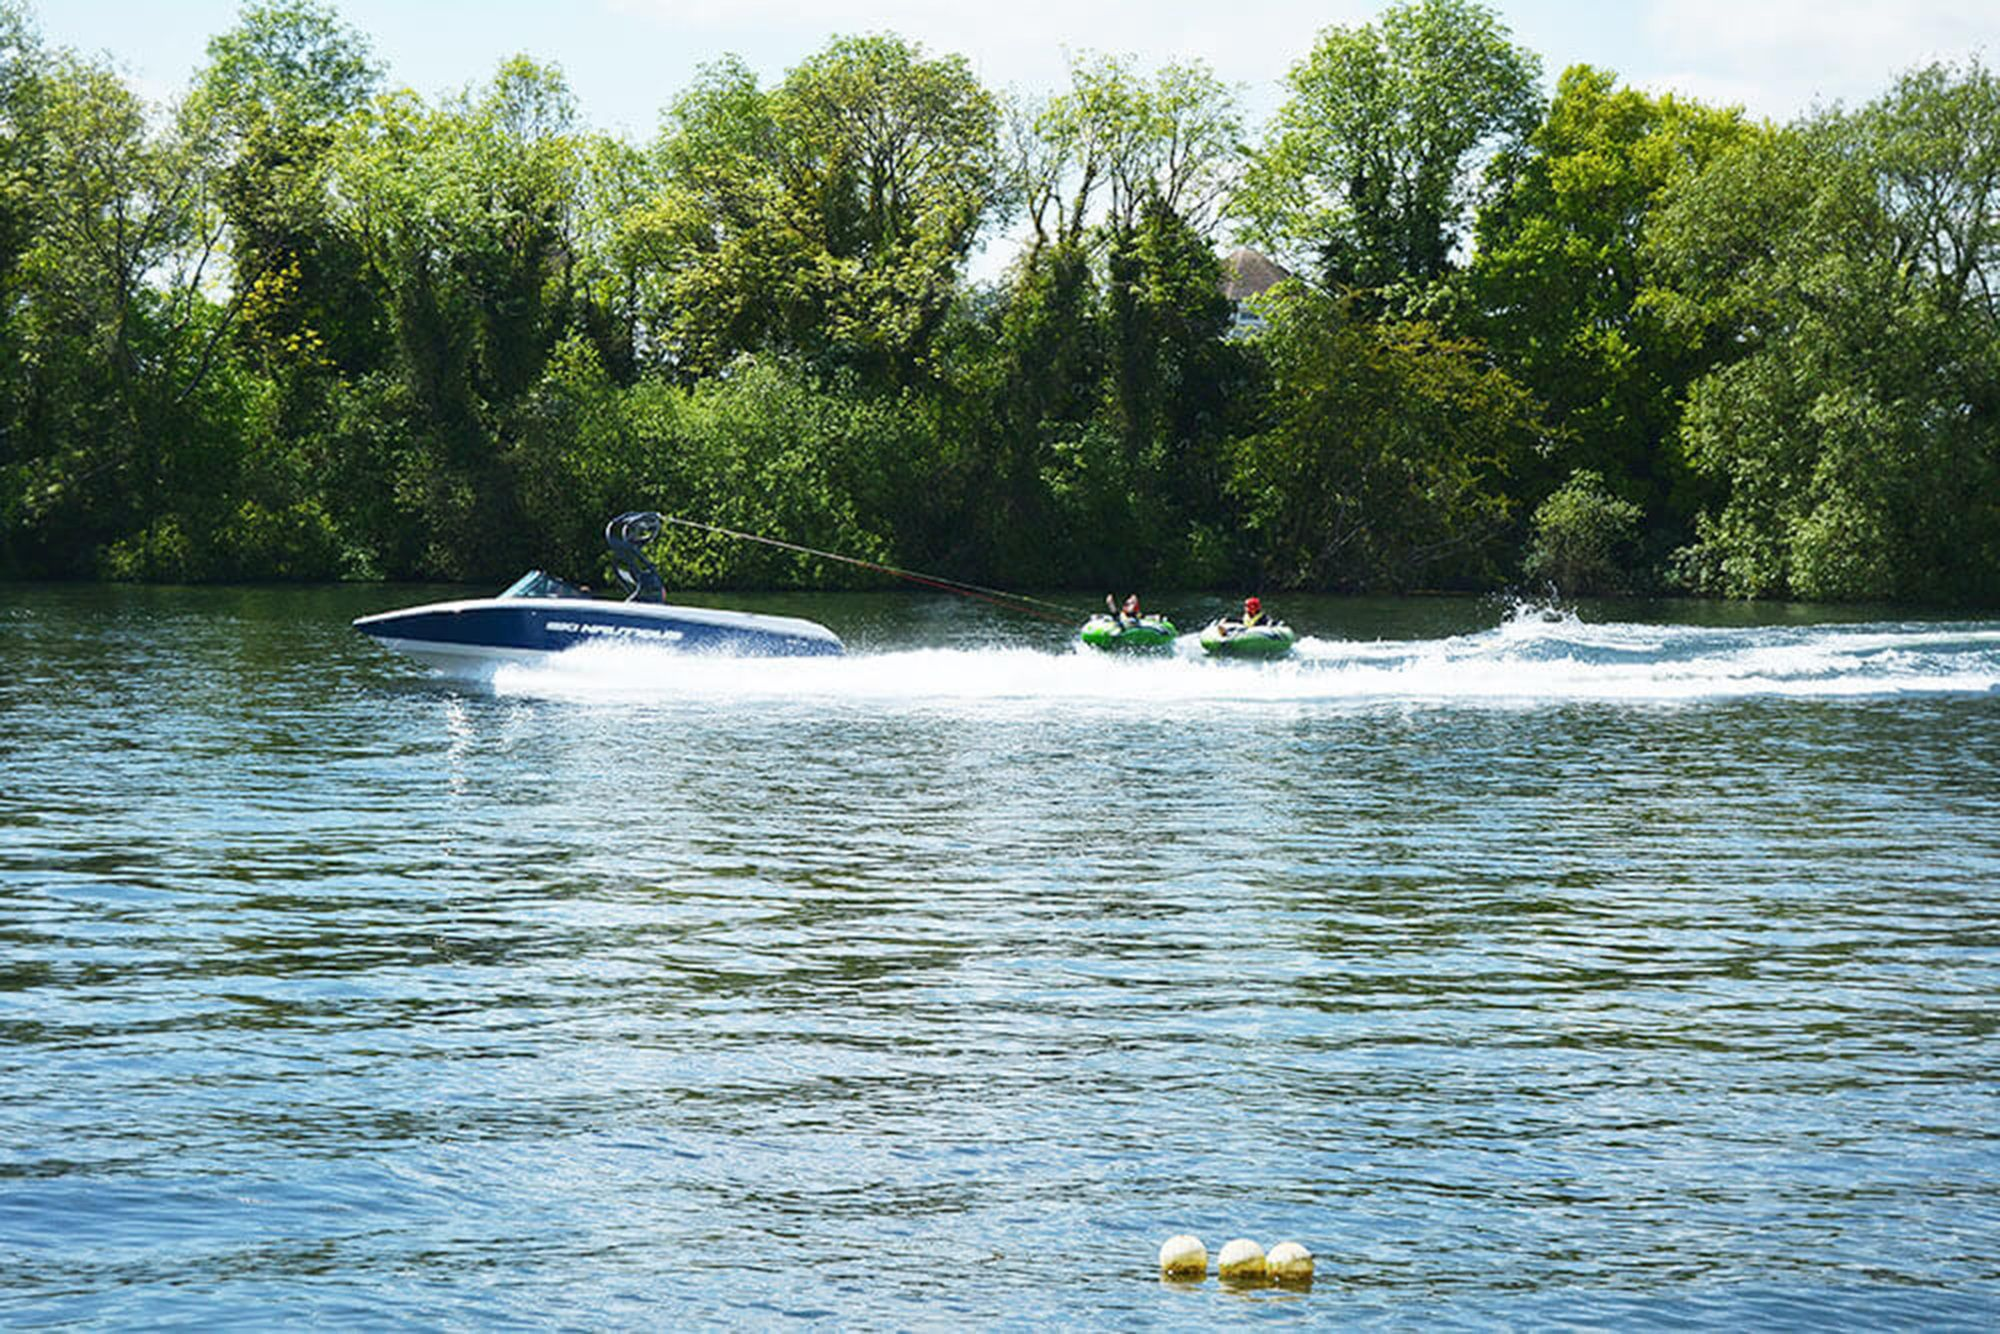 Lakeside Ski & Wake offer wakeboard and waterski lessons on the lake